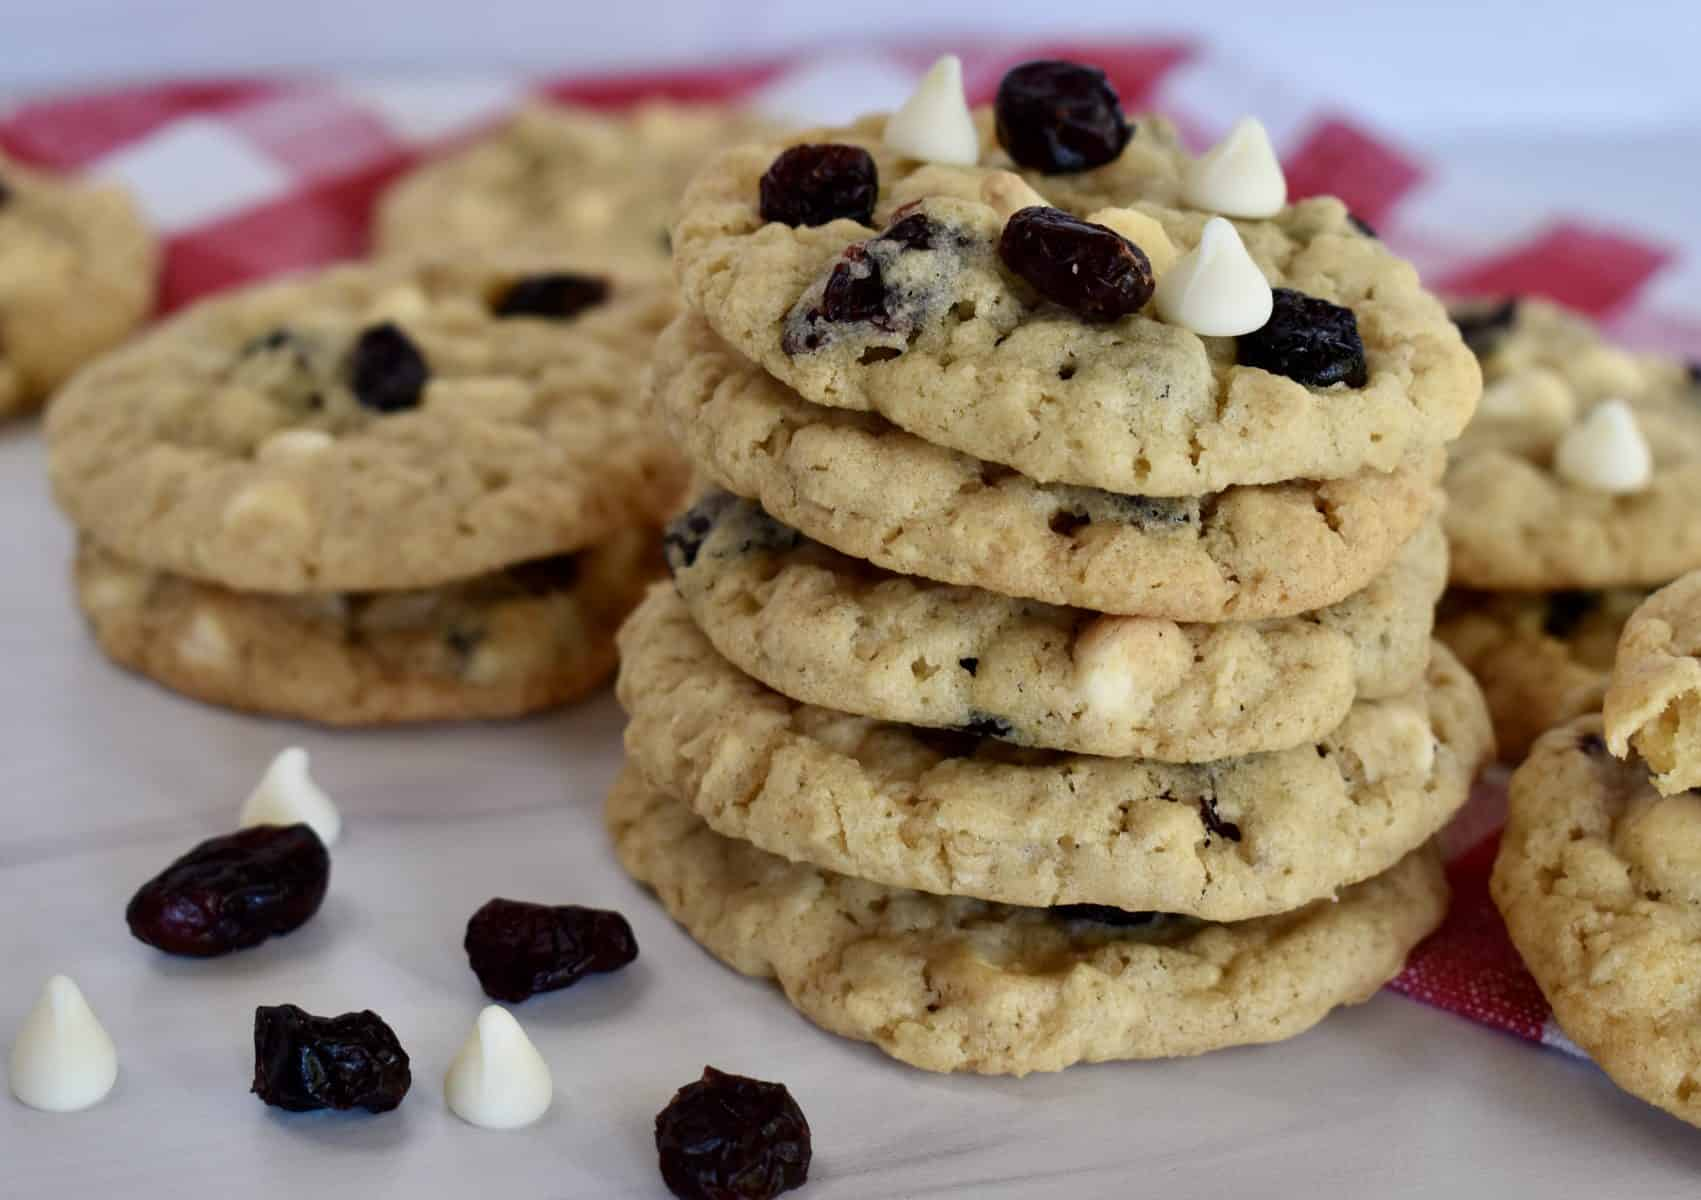 White Chocolate Cranberry cookies stacked on each other.